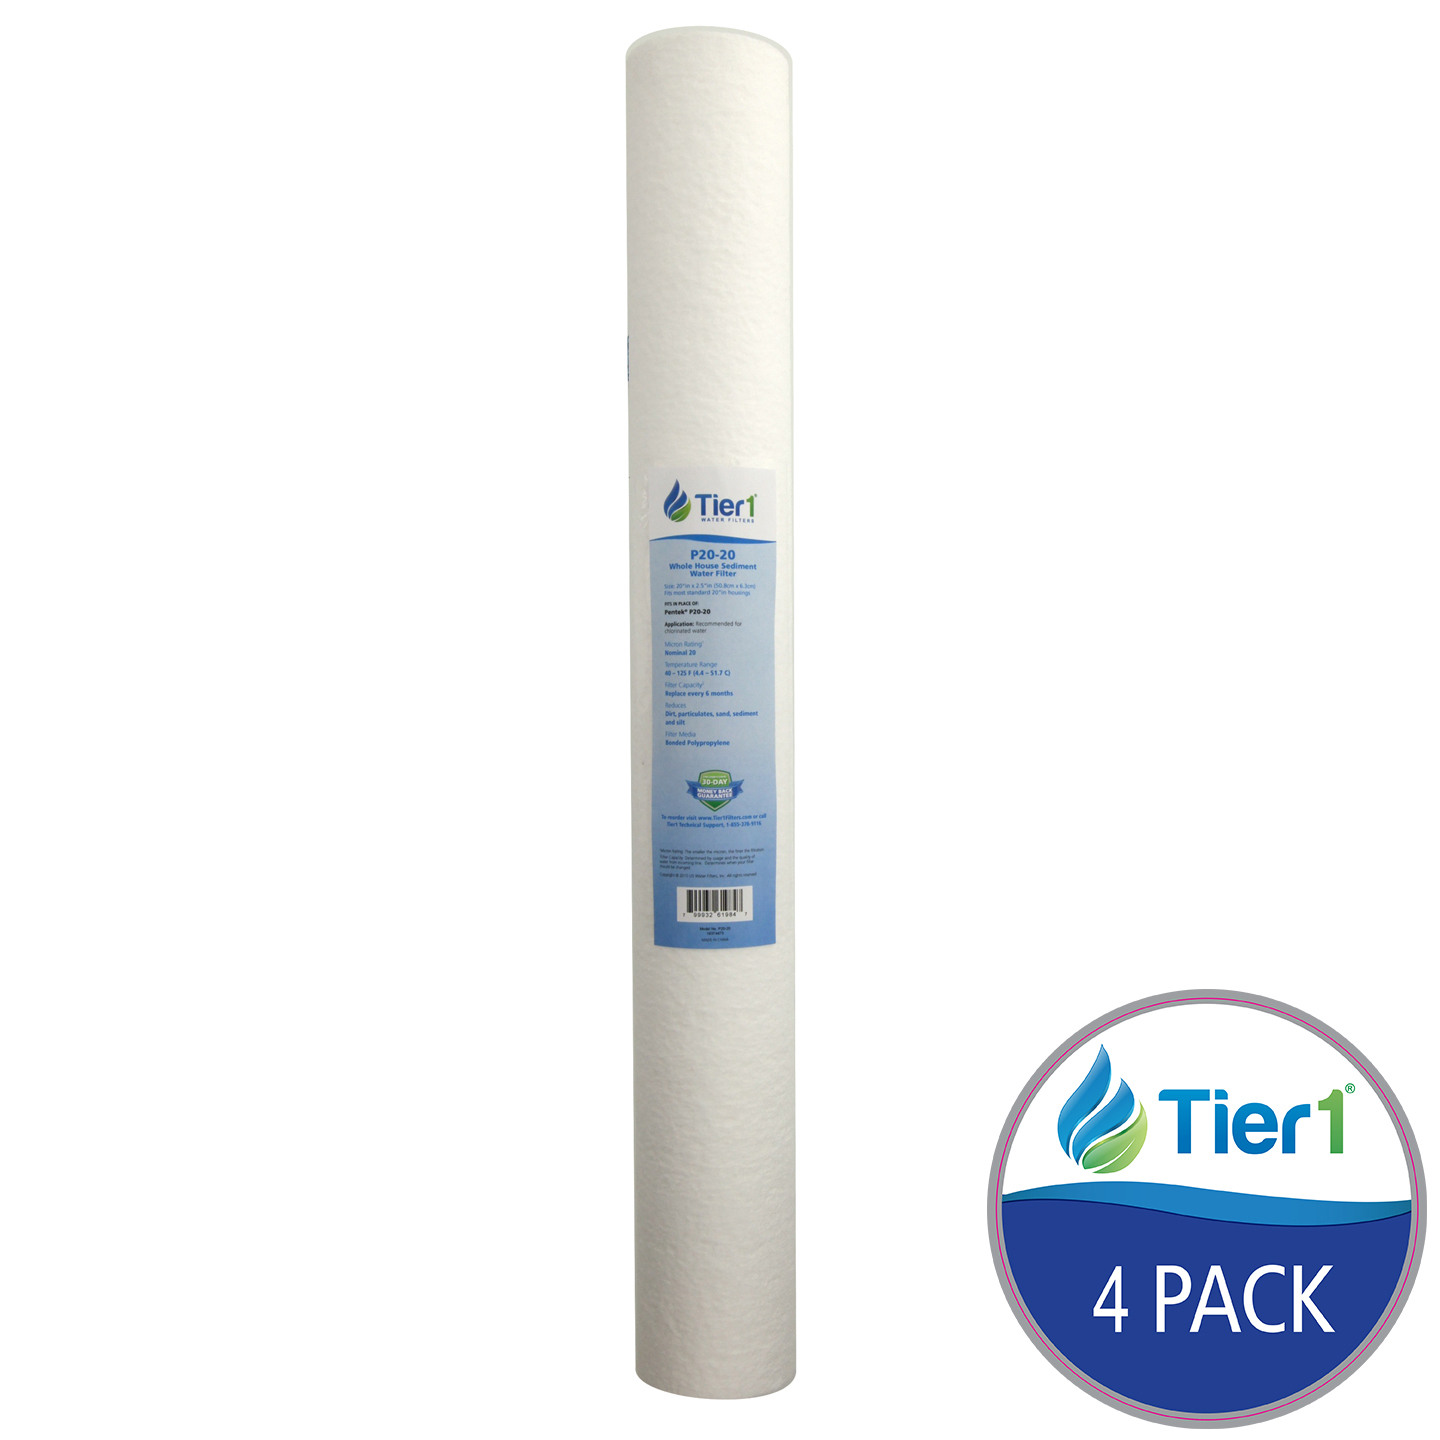 Pentek PS20-20C Polypropylene Sediment Water Filter Replacement by Tier1 (4-Pack) TIER1_P20_20_4_PACK